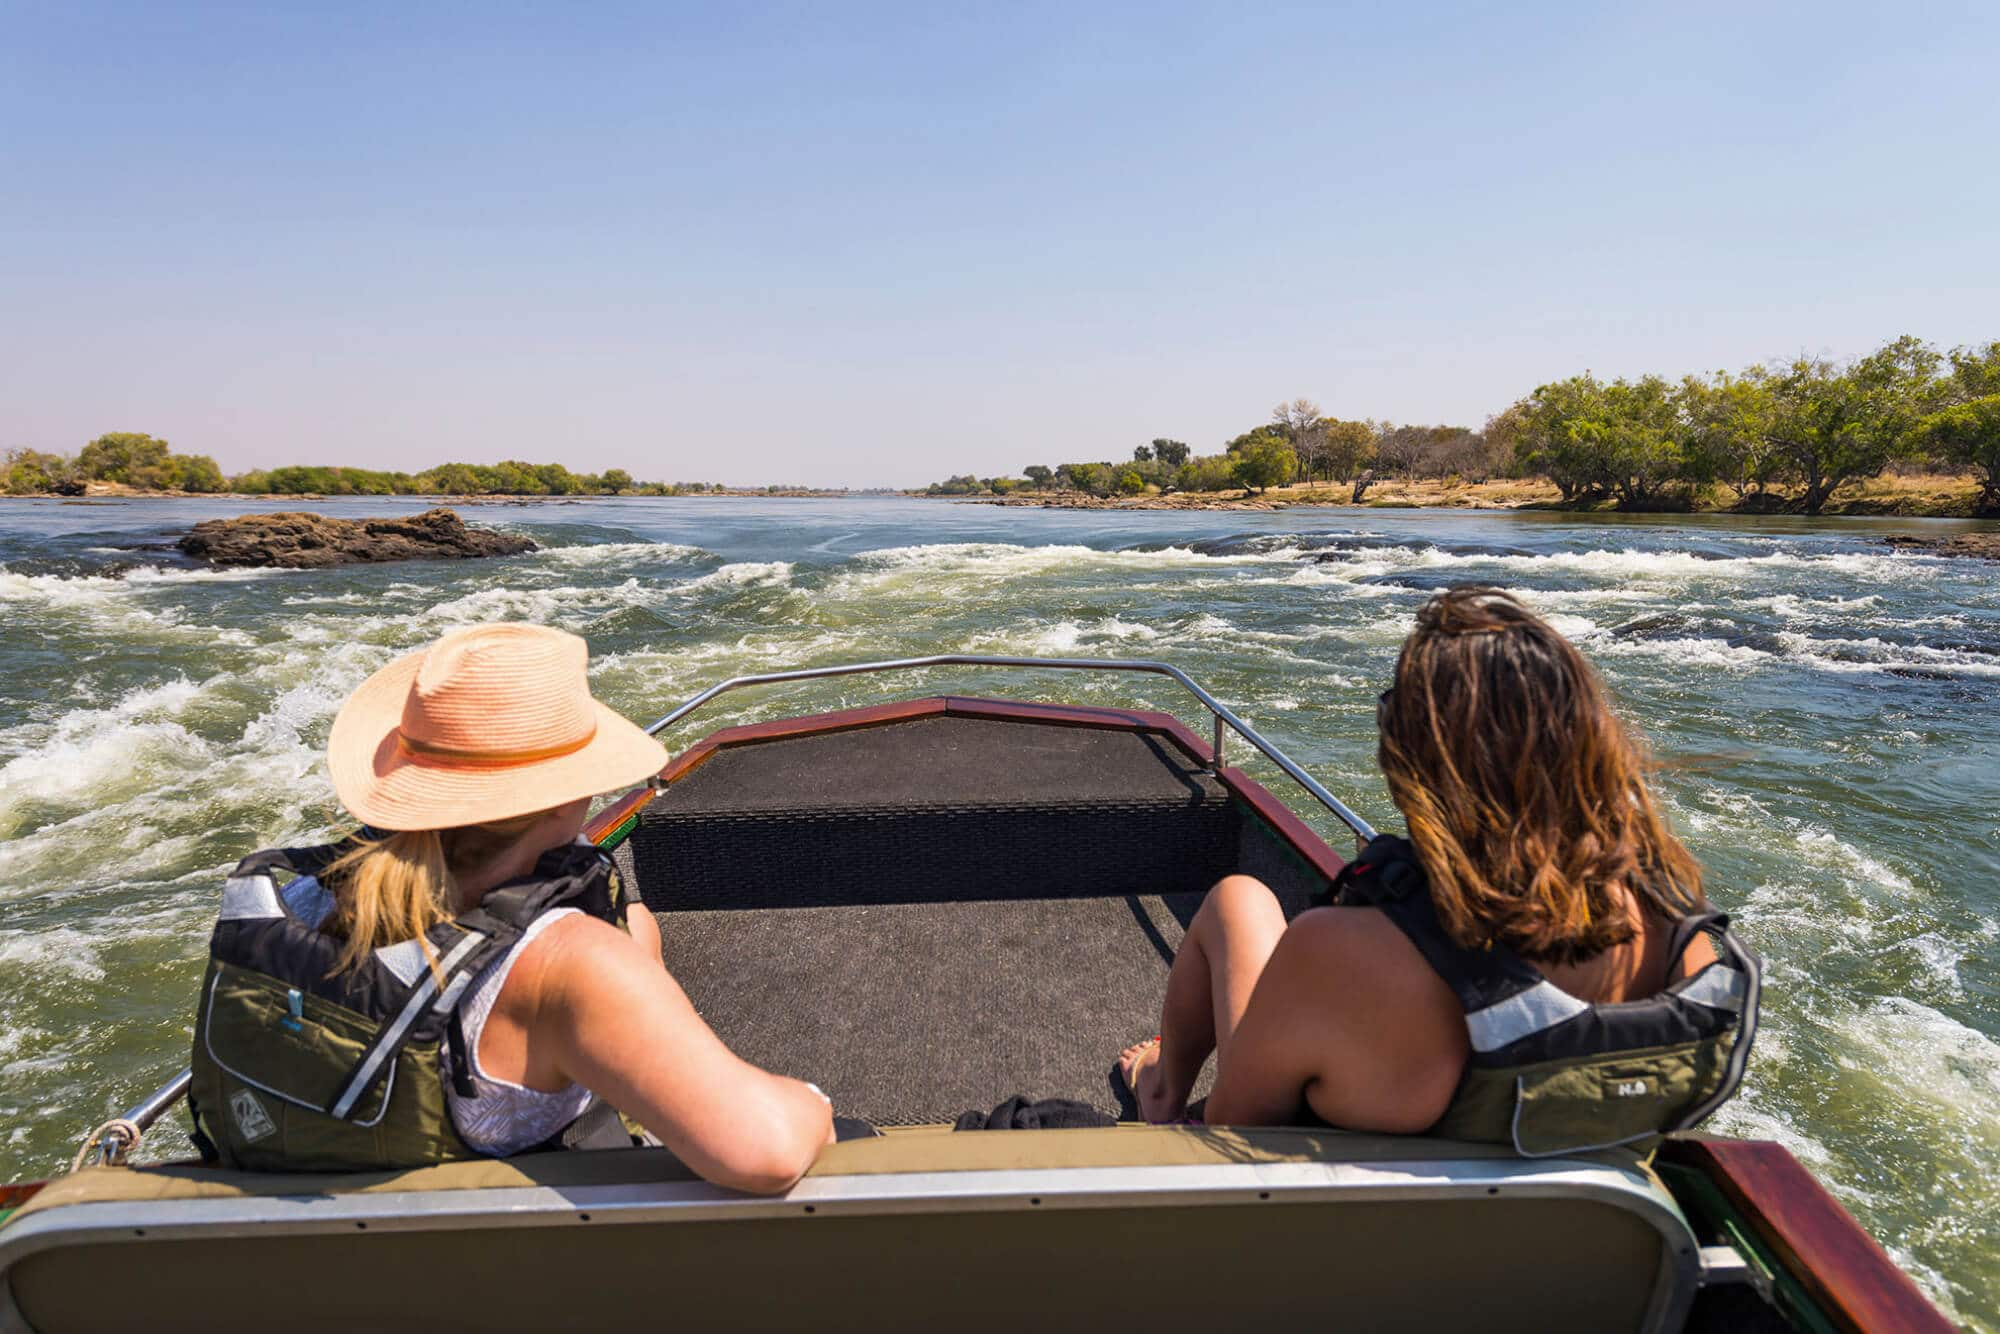 Boat cruise on the Zambezi River